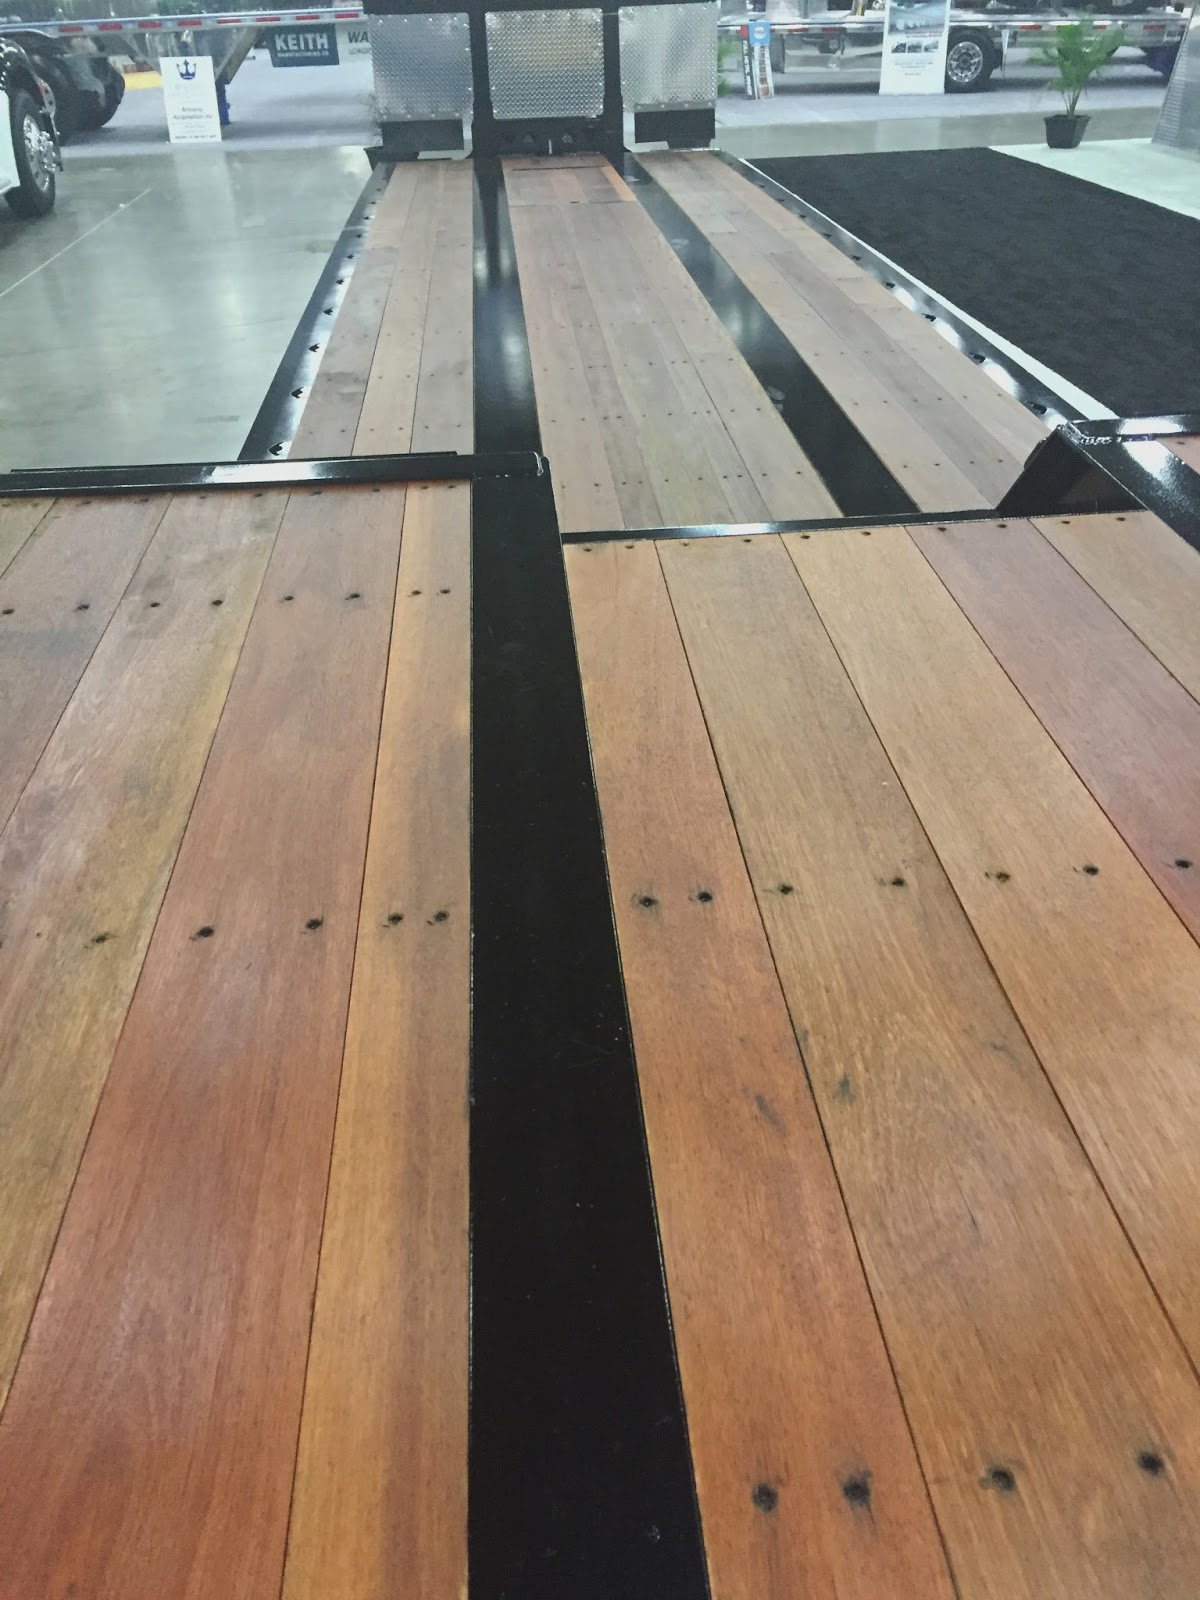 in deck outdoor product flooring made board floor china supplier nyumkaztjlvd wpc decking eco sheet